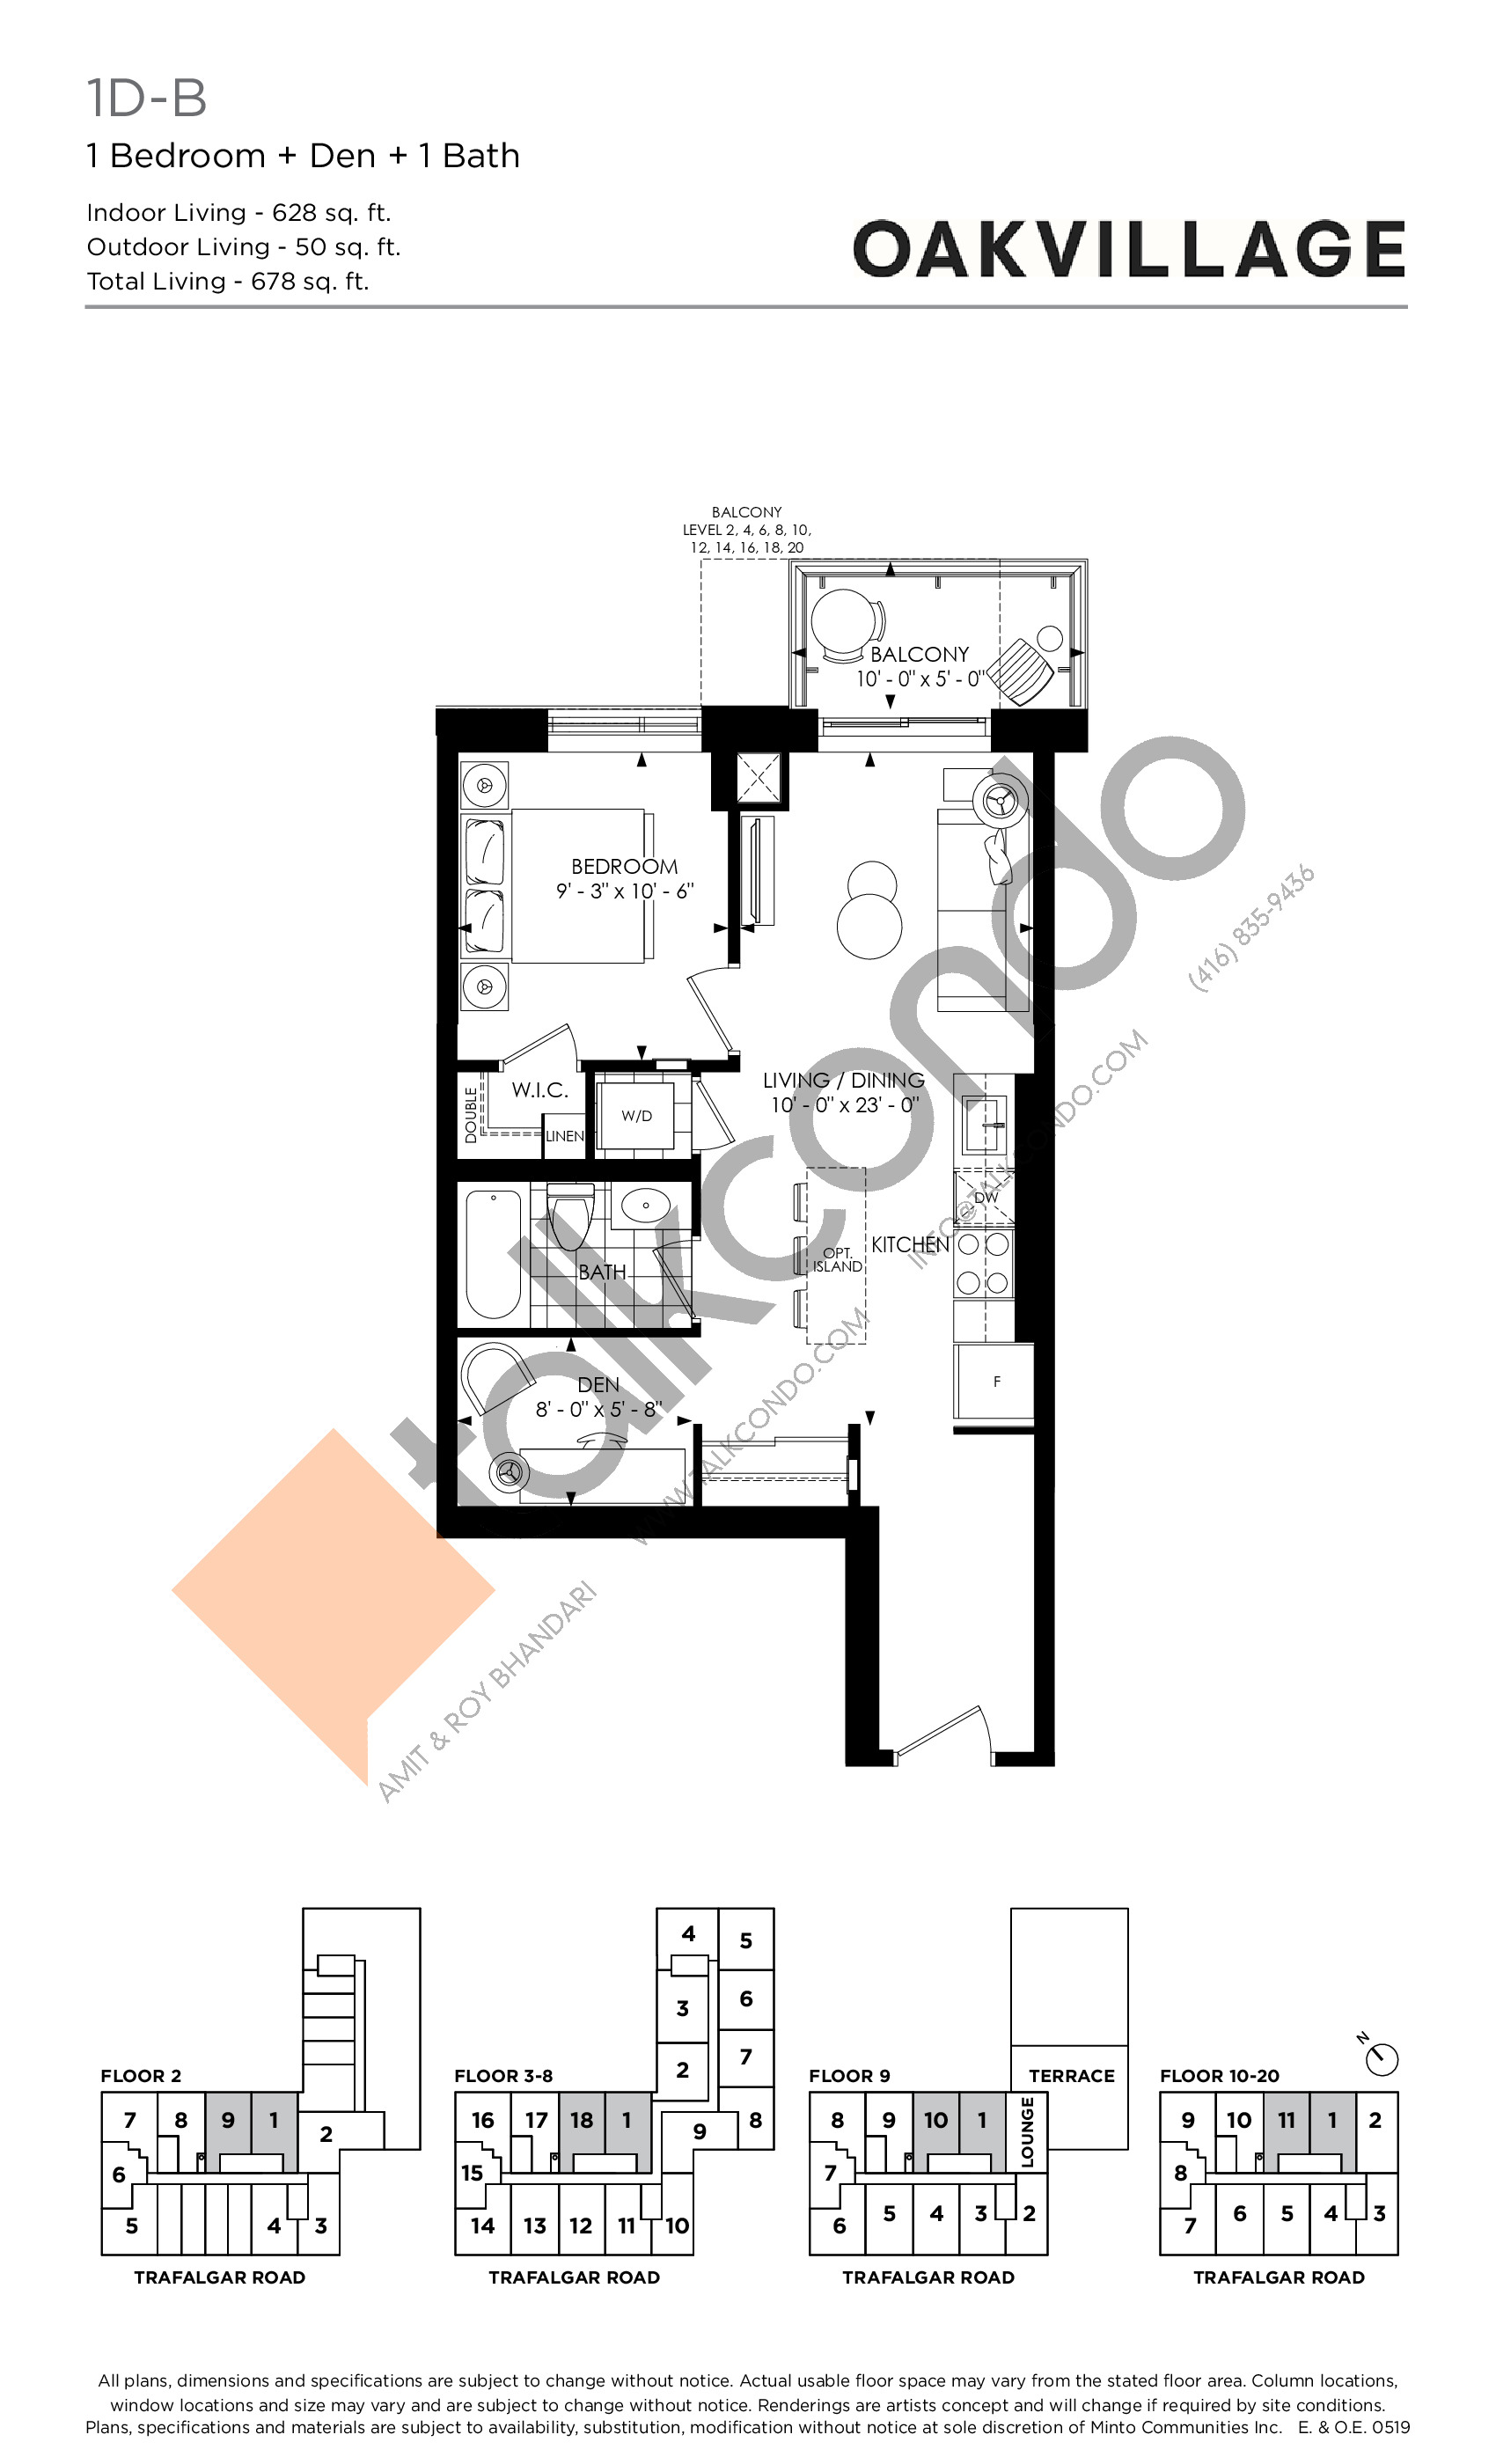 1D-B (Tower) Floor Plan at Oakvillage Phase 2 - 628 sq.ft